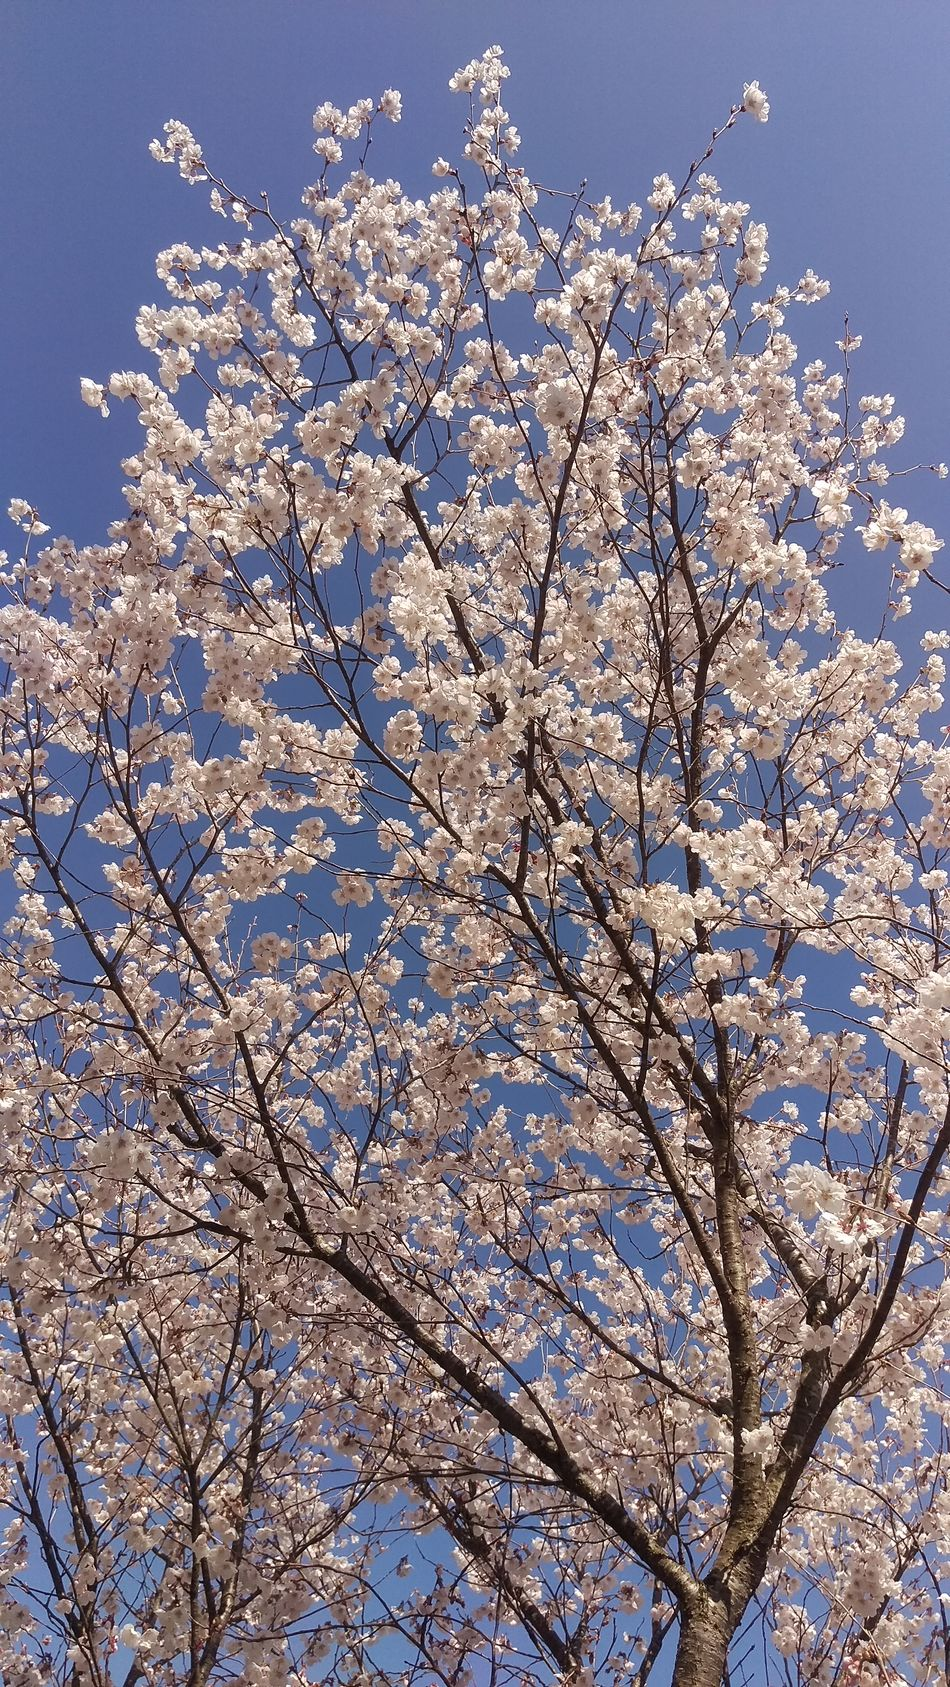 桜開花 桜 開花 快晴 青空 Blue Sky Fine Day Fine Weather Japan Photos Flower Cherry Blossoms Flower Collection Cherry Blossam Collection Spring